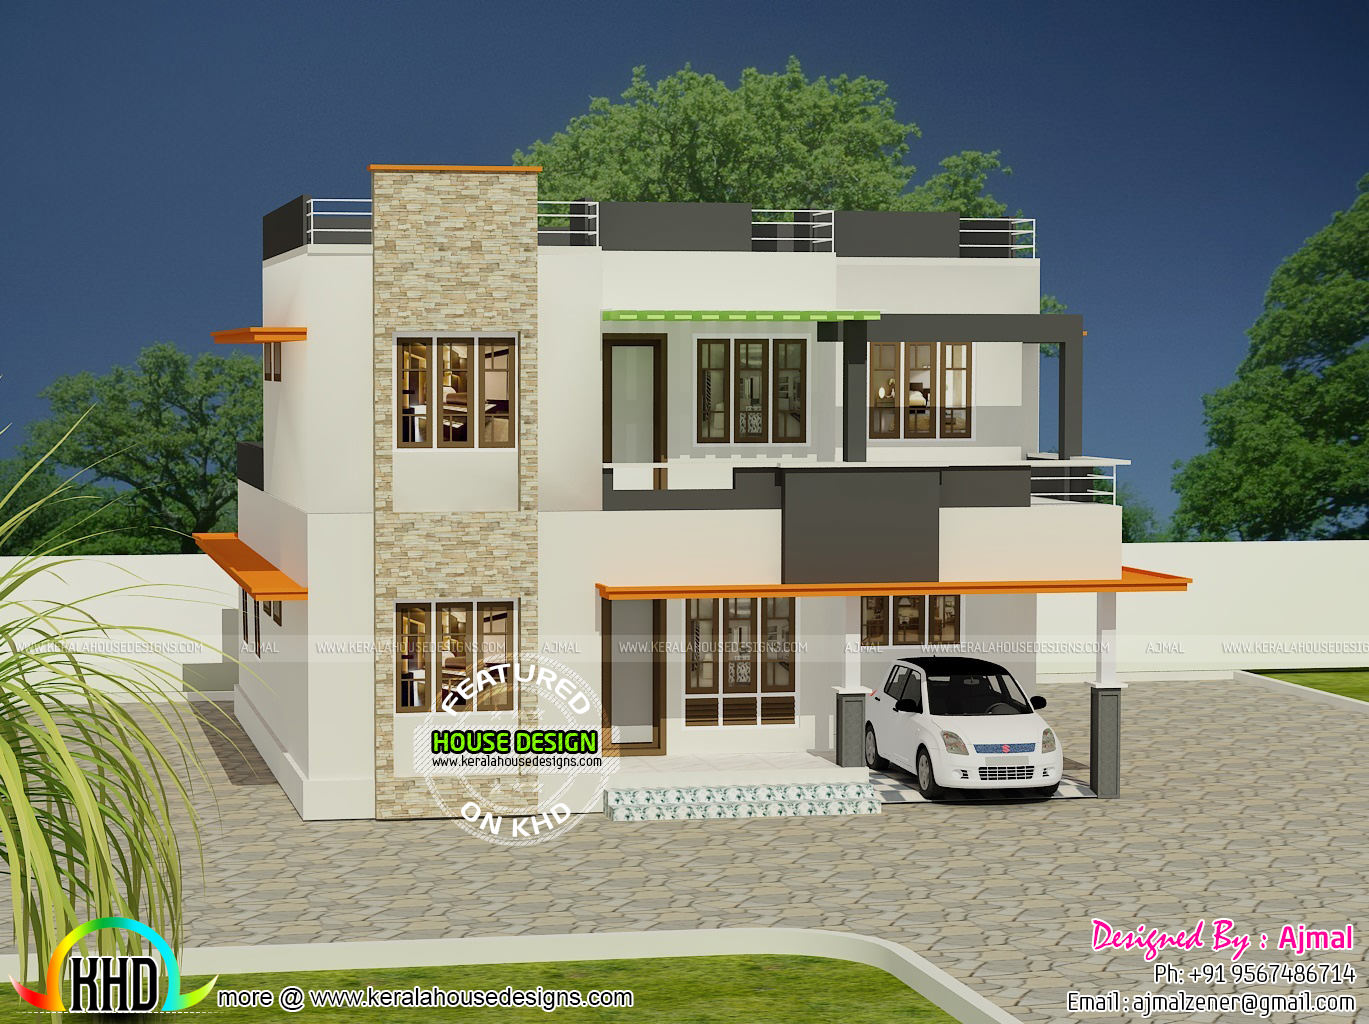 20 lakhs house in kerala kerala home design and floor plans for House plans in kerala with estimate